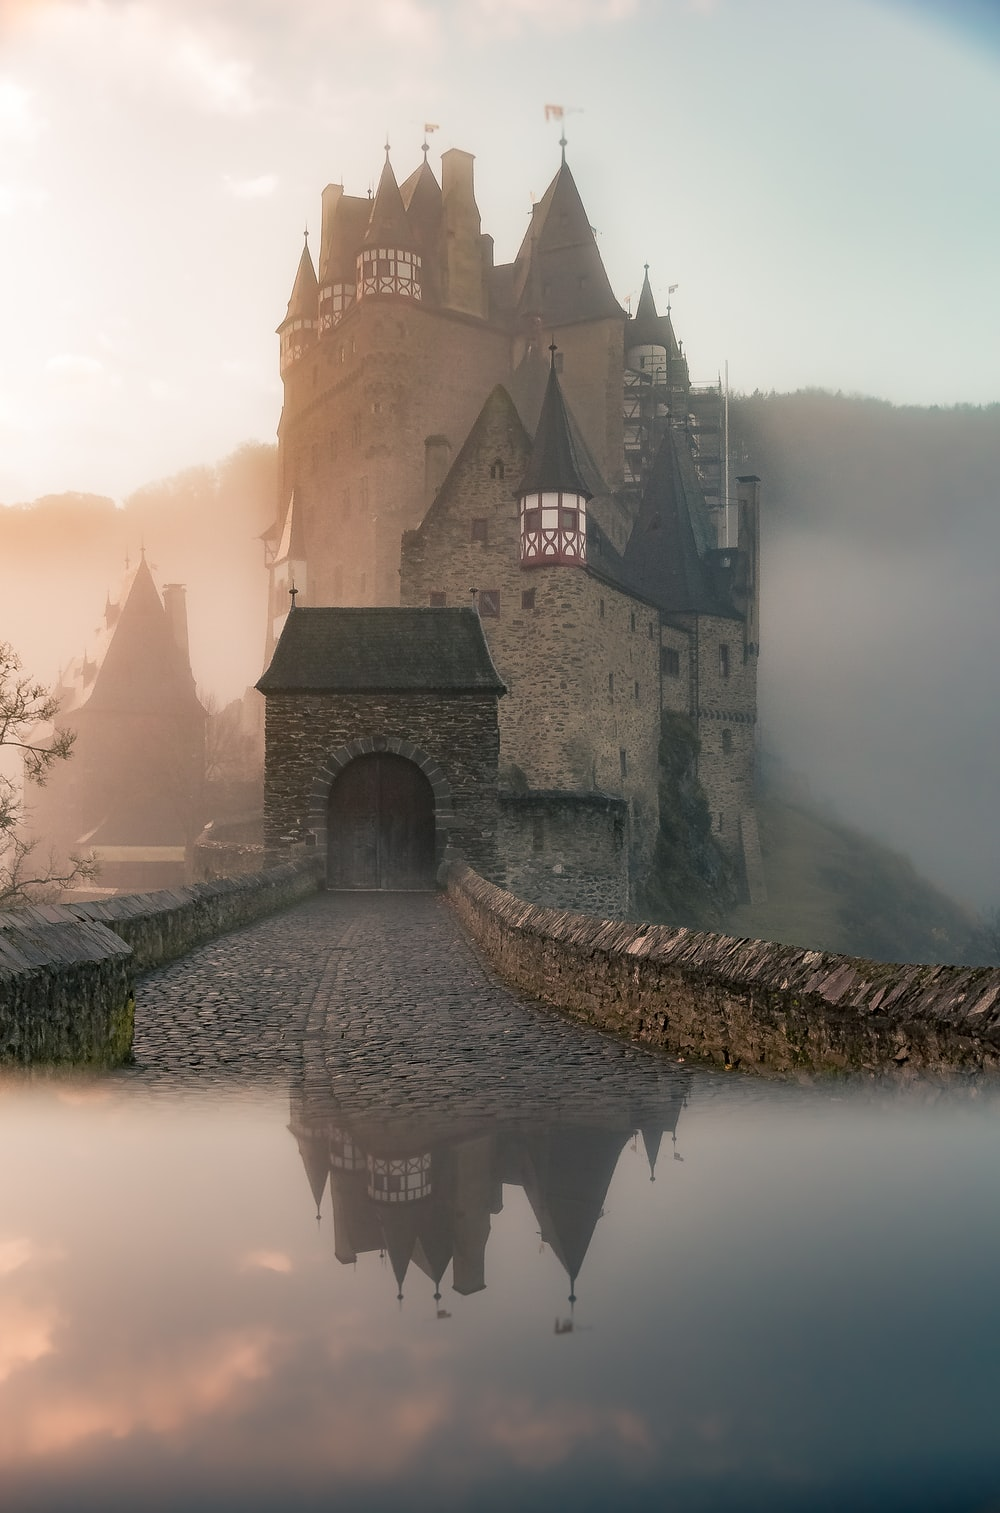 reflection of a castle surrounded with fogs